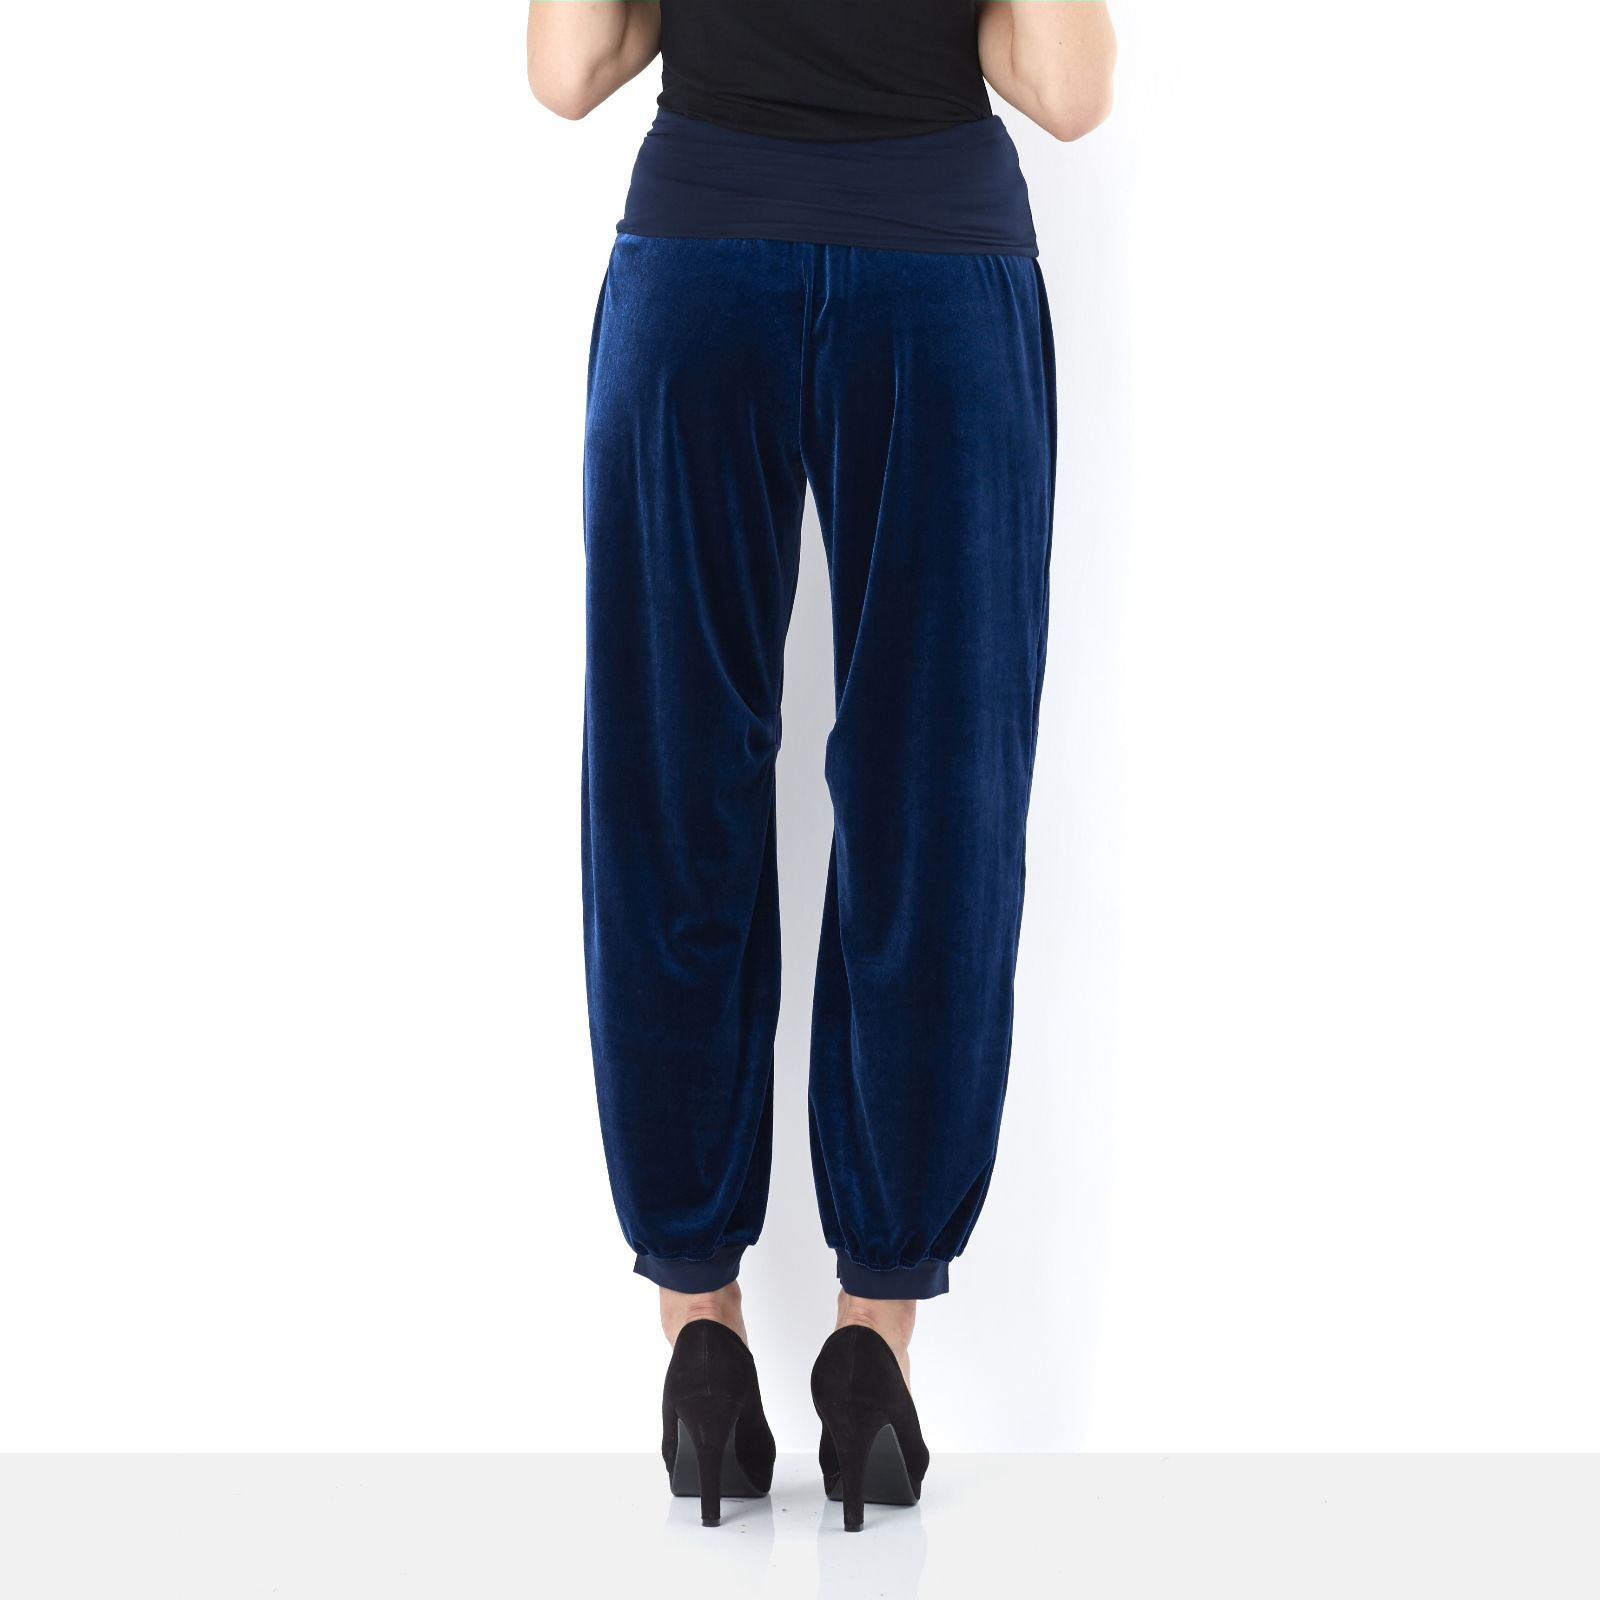 Join Clothes Velvet Yoga Pant